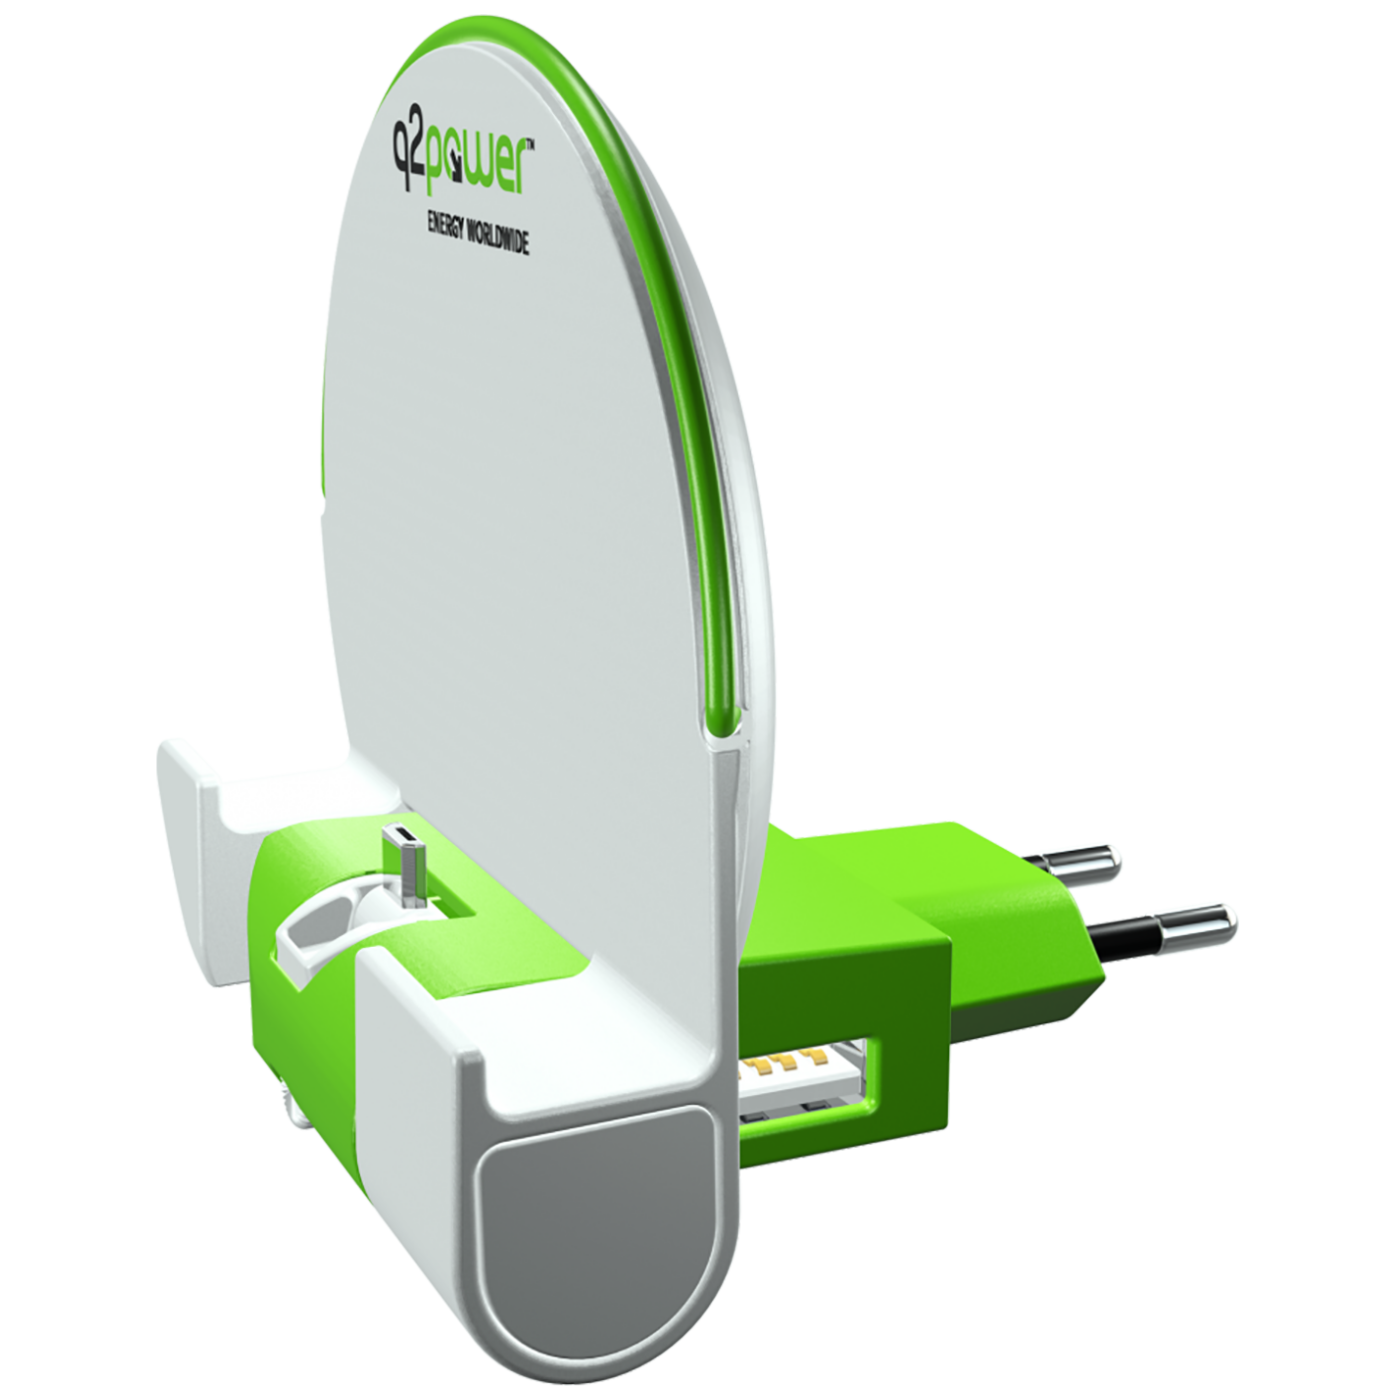 q2power - DOCK&CHARGE M EURO